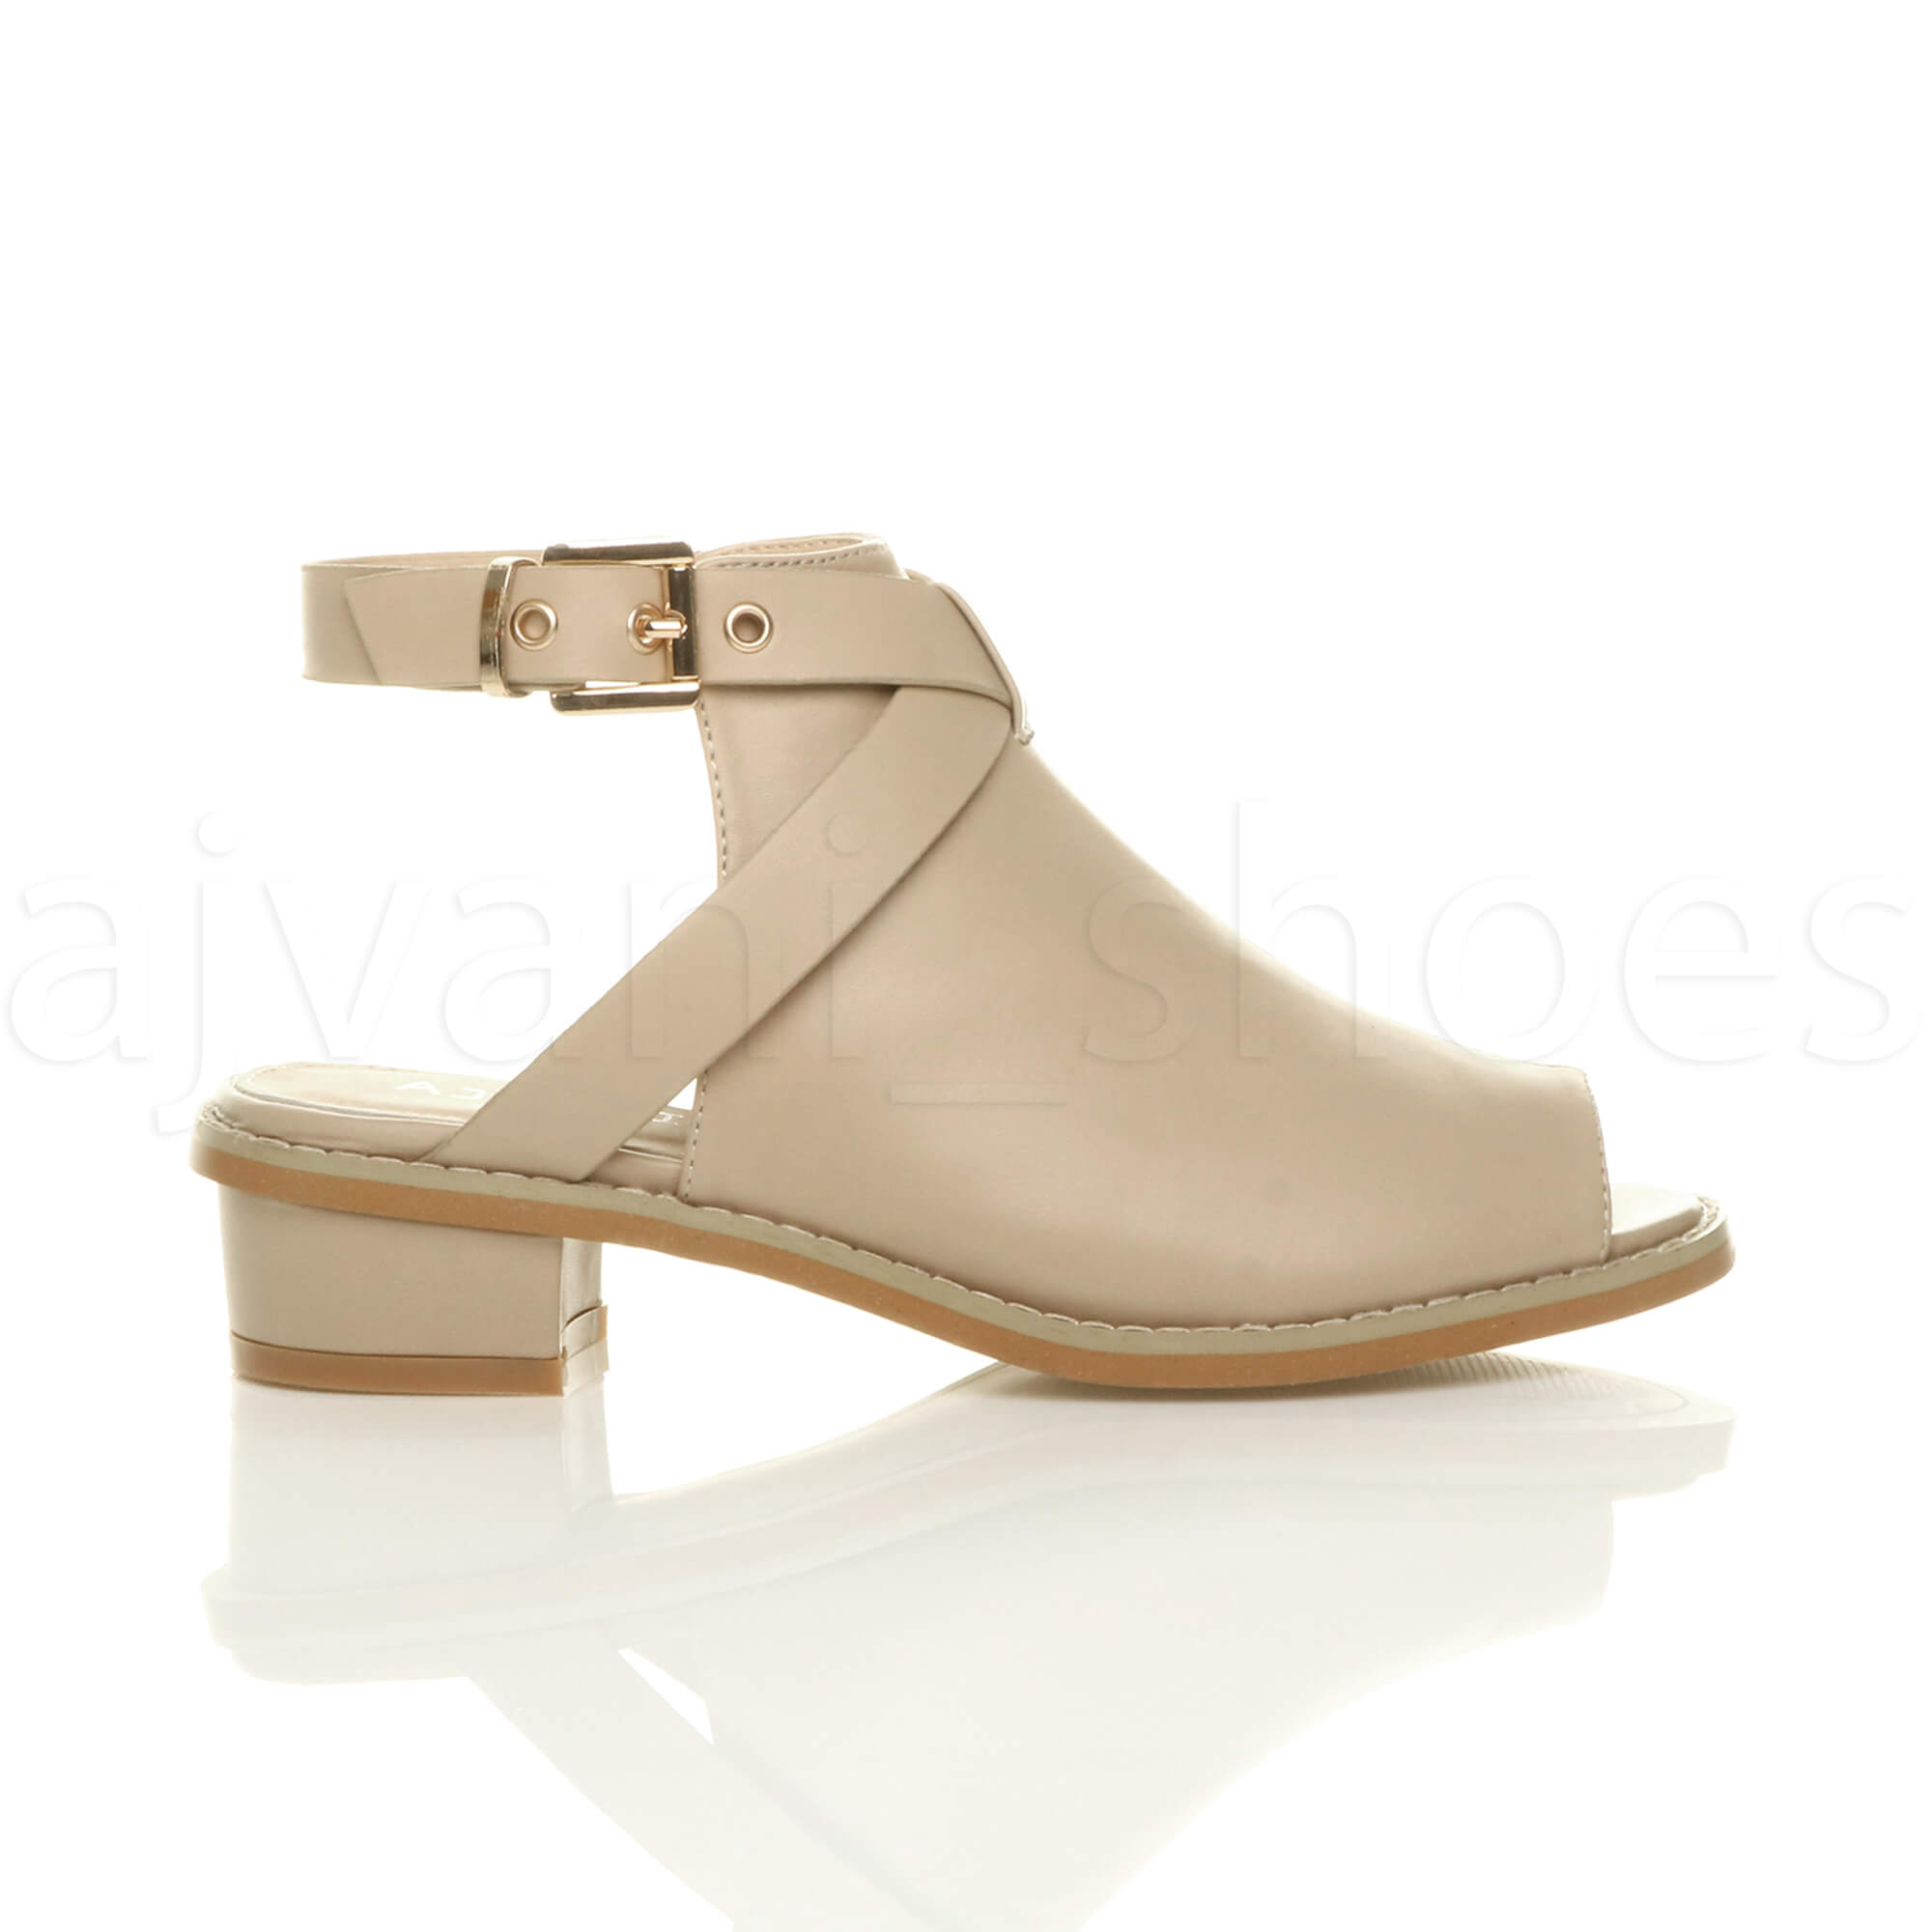 WOMENS-LADIES-LOW-MID-BLOCK-HEEL-PEEP-TOE-ANKLE-STRAP-BOOTS-SHOES-SANDALS-SIZE